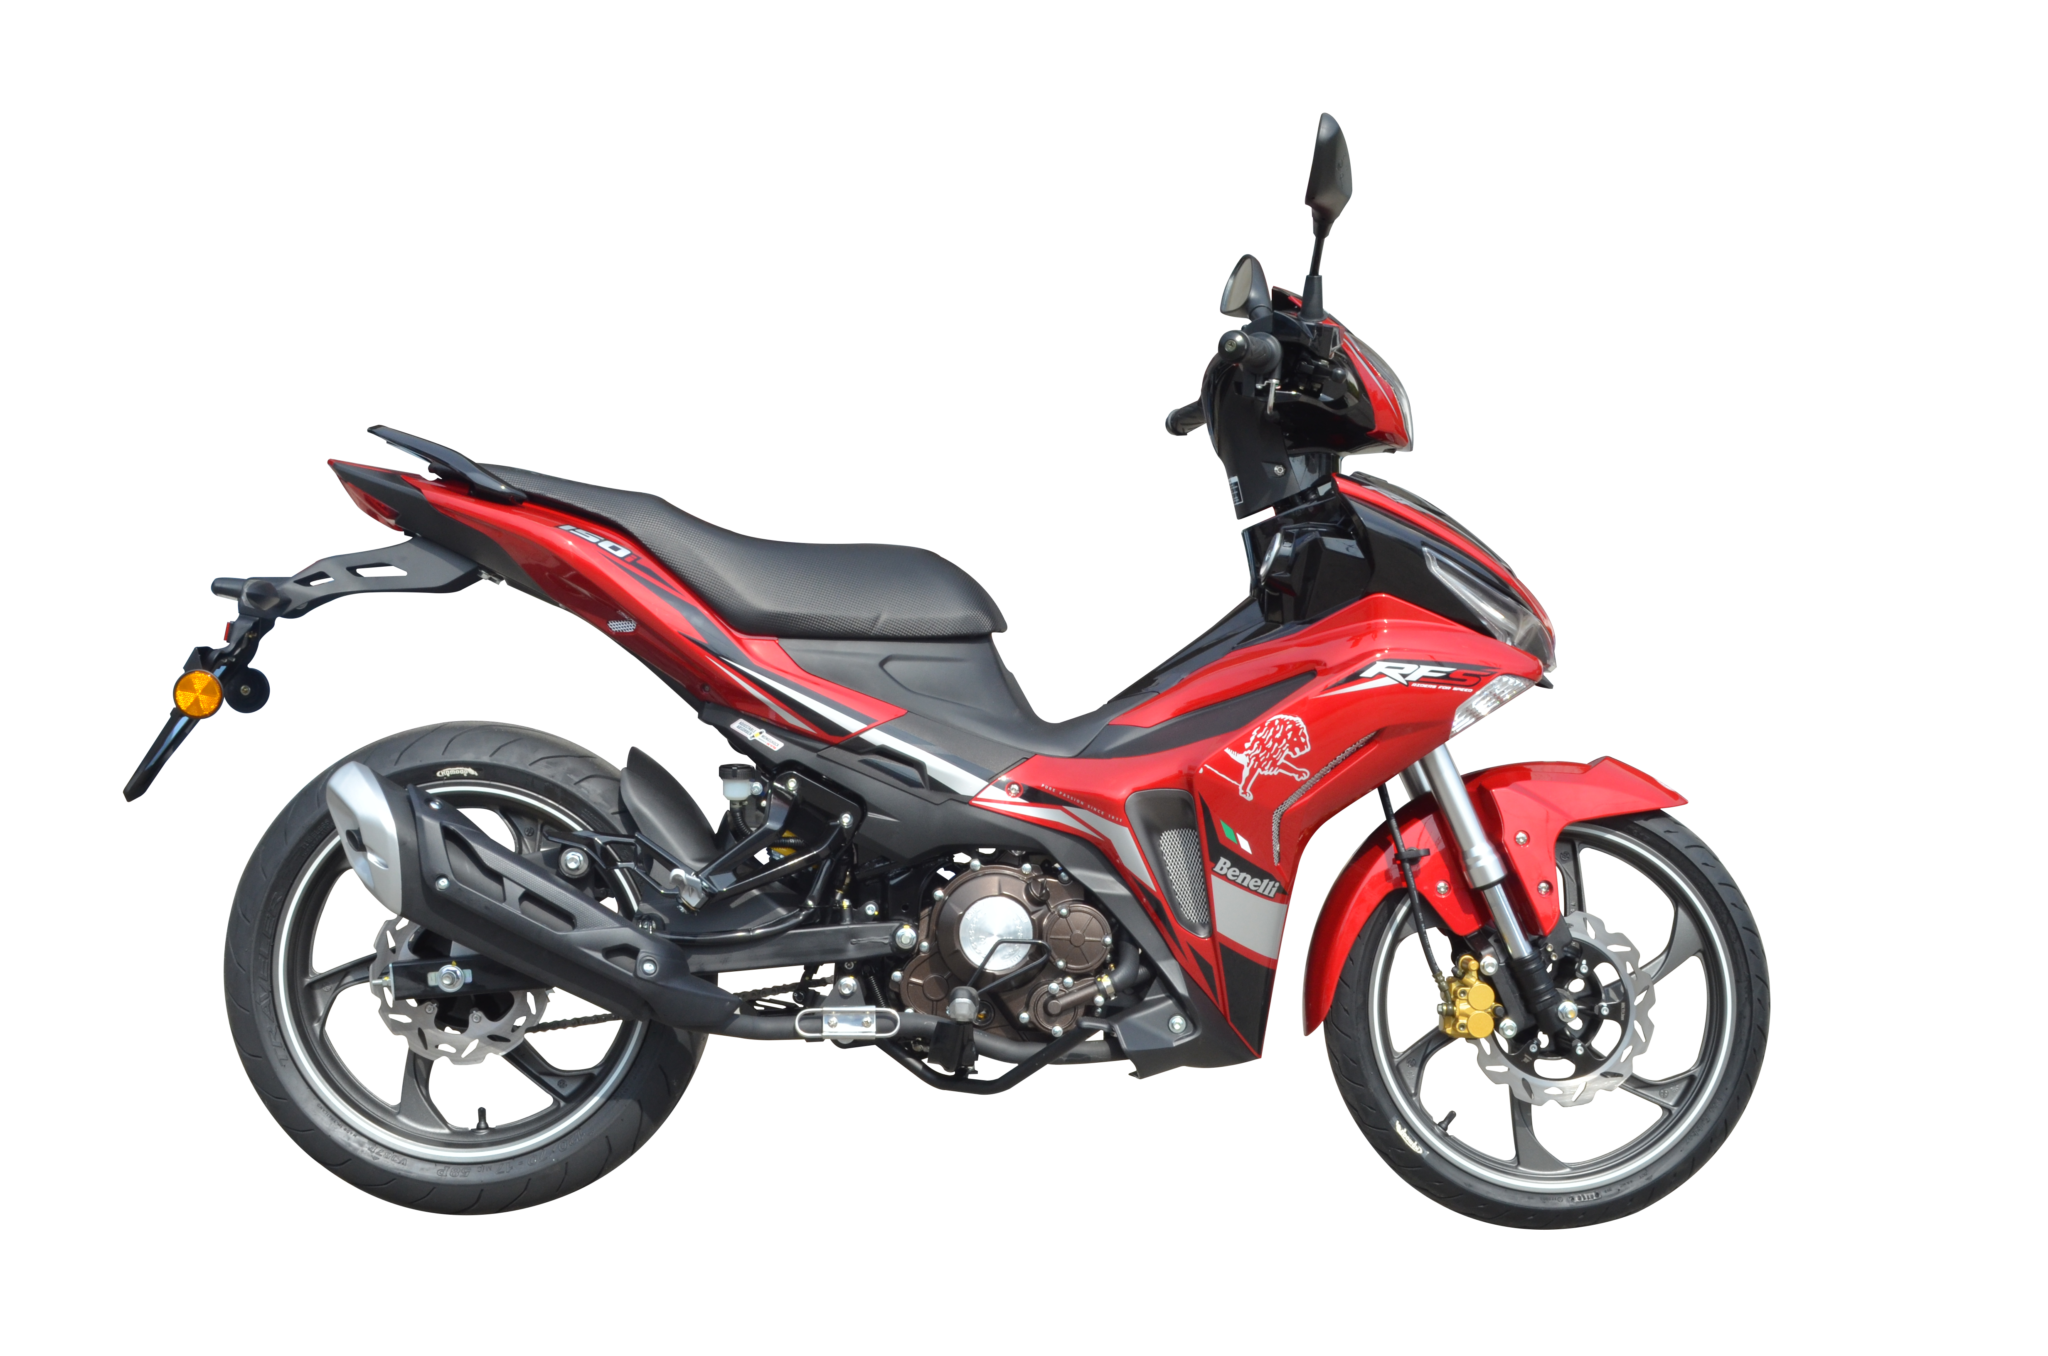 Take a look at the all-new Benelli RFS150i Special Edition (SE)